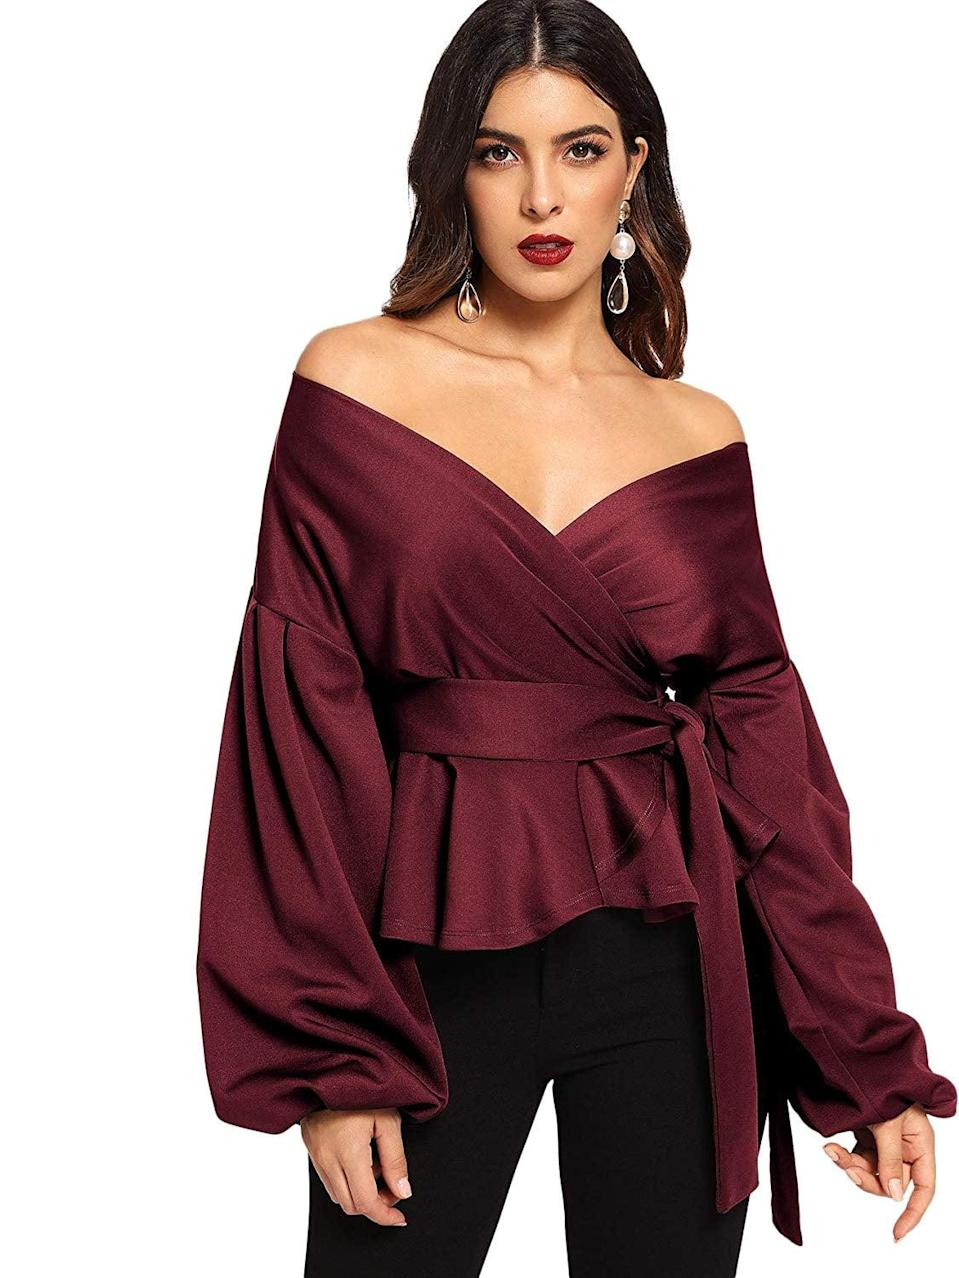 "<p>Forget your sexy college ""party tops,"" and look for one that you wouldn't be embarrassed to wear in front of your parents. That doesn't mean it can't show a little skin, but opt for more luxe fabrics and pretty details, like this <a href=""https://www.popsugar.com/buy/Shein-top-551951?p_name=Shein%20top&retailer=amazon.com&pid=551951&price=35&evar1=fab%3Aus&evar9=34097656&evar98=https%3A%2F%2Fwww.popsugar.com%2Ffashion%2Fphoto-gallery%2F34097656%2Fimage%2F34097667%2FDate-Night-Top&list1=shopping%2Cstyle%20how%20to&prop13=mobile&pdata=1"" class=""link rapid-noclick-resp"" rel=""nofollow noopener"" target=""_blank"" data-ylk=""slk:Shein top"">Shein top</a> ($35), that feel more expensive. Trust us, your dates will approve, too.</p>"